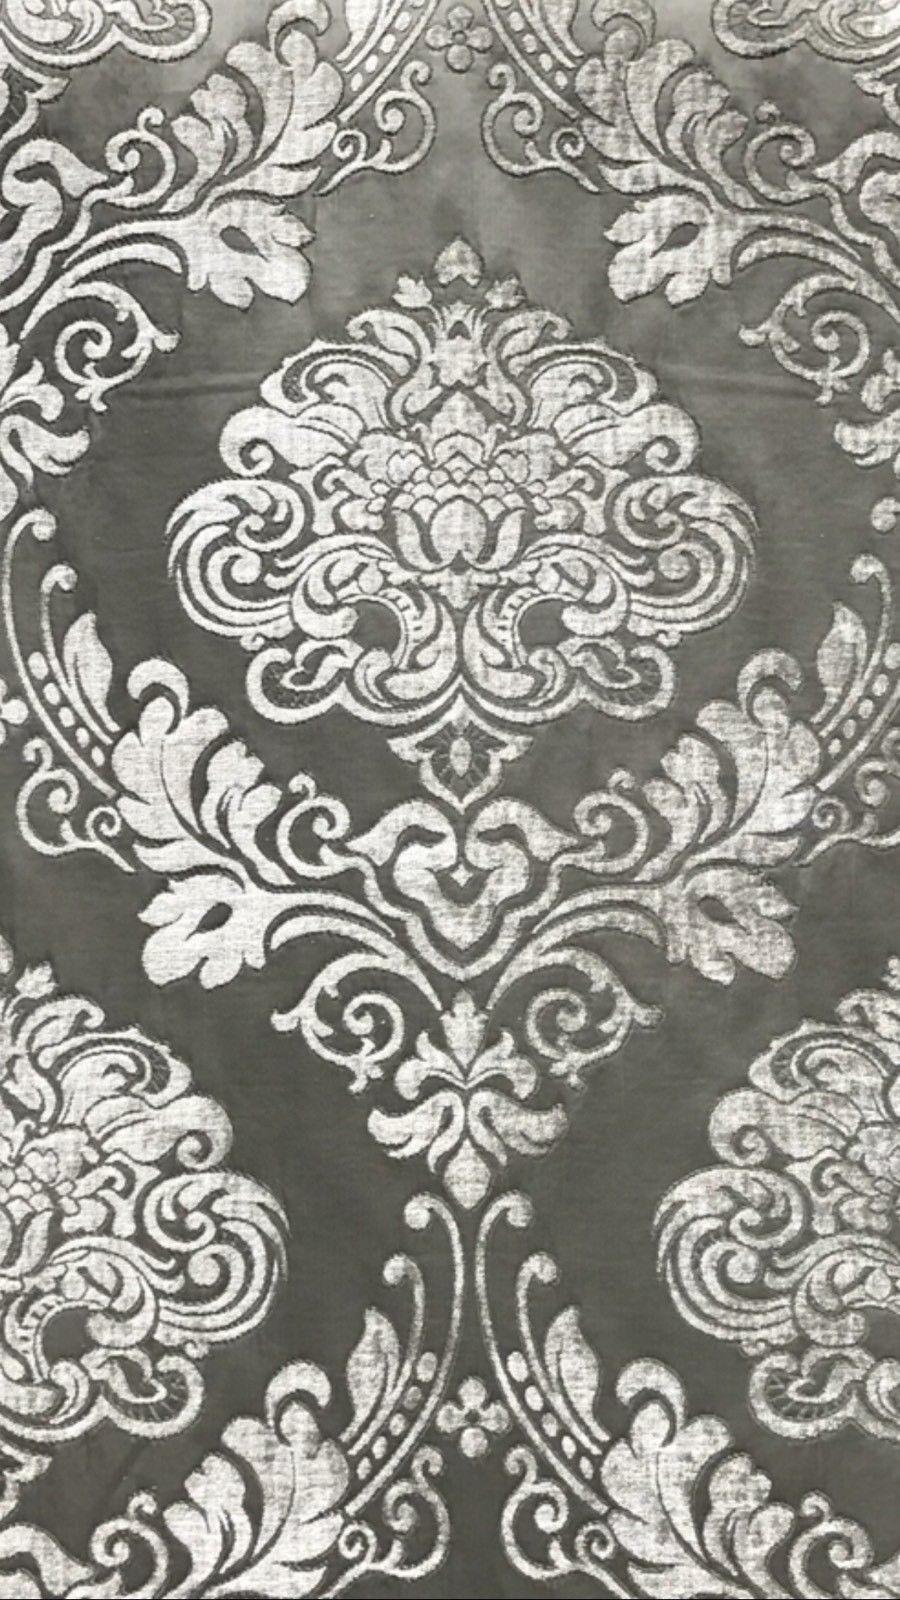 SWATCH Designer Satin Burnout Chenille Velvet Fabric - Gray Upholstery Damask - Fancy Styles Fabric Boutique